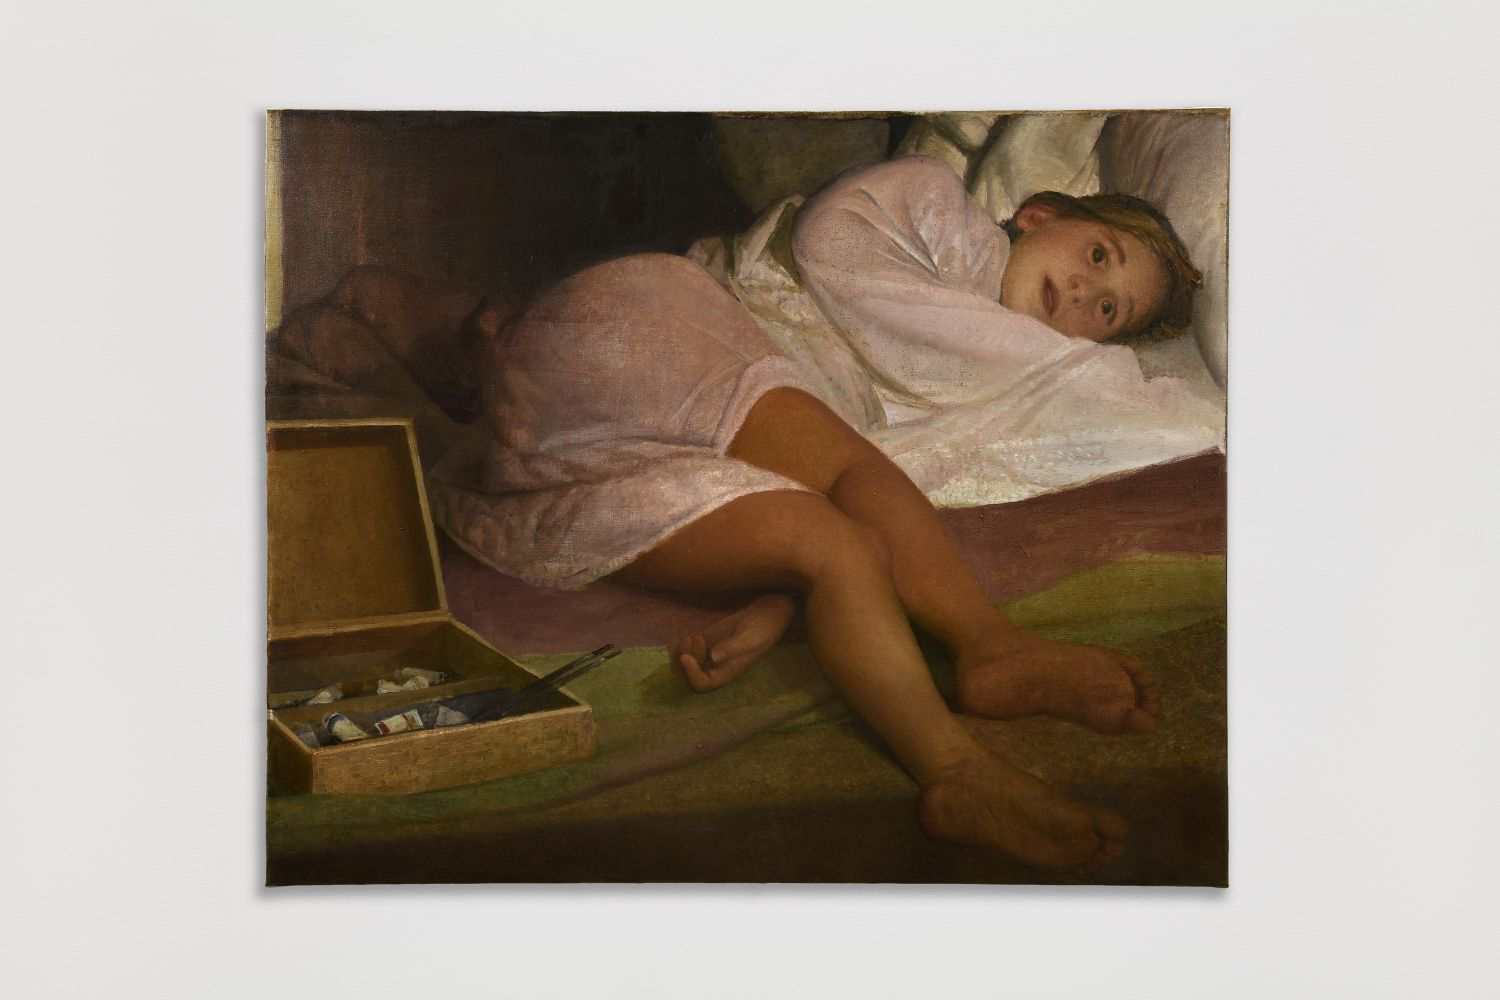 Oil painting of paint box next to a sleeping child by Vincent Desiderio.